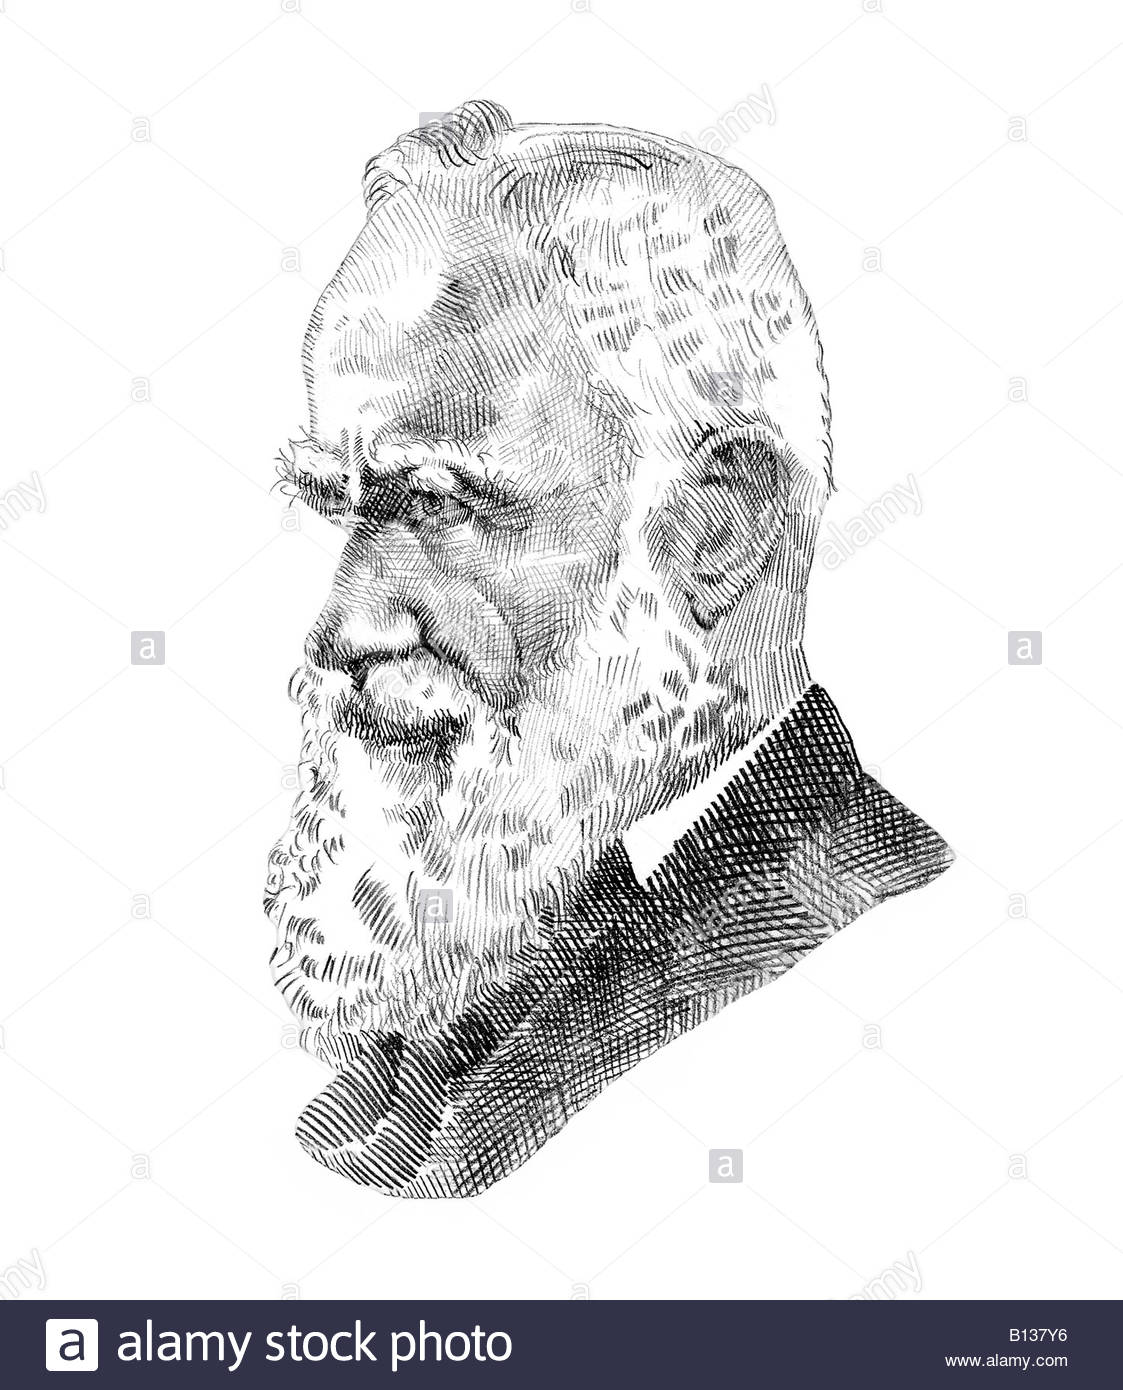 george bernard shaw portrait stock photos george bernard shaw george bernard shaw 1856 1950 irish critic playwright cross hatch style modern illustration stock image